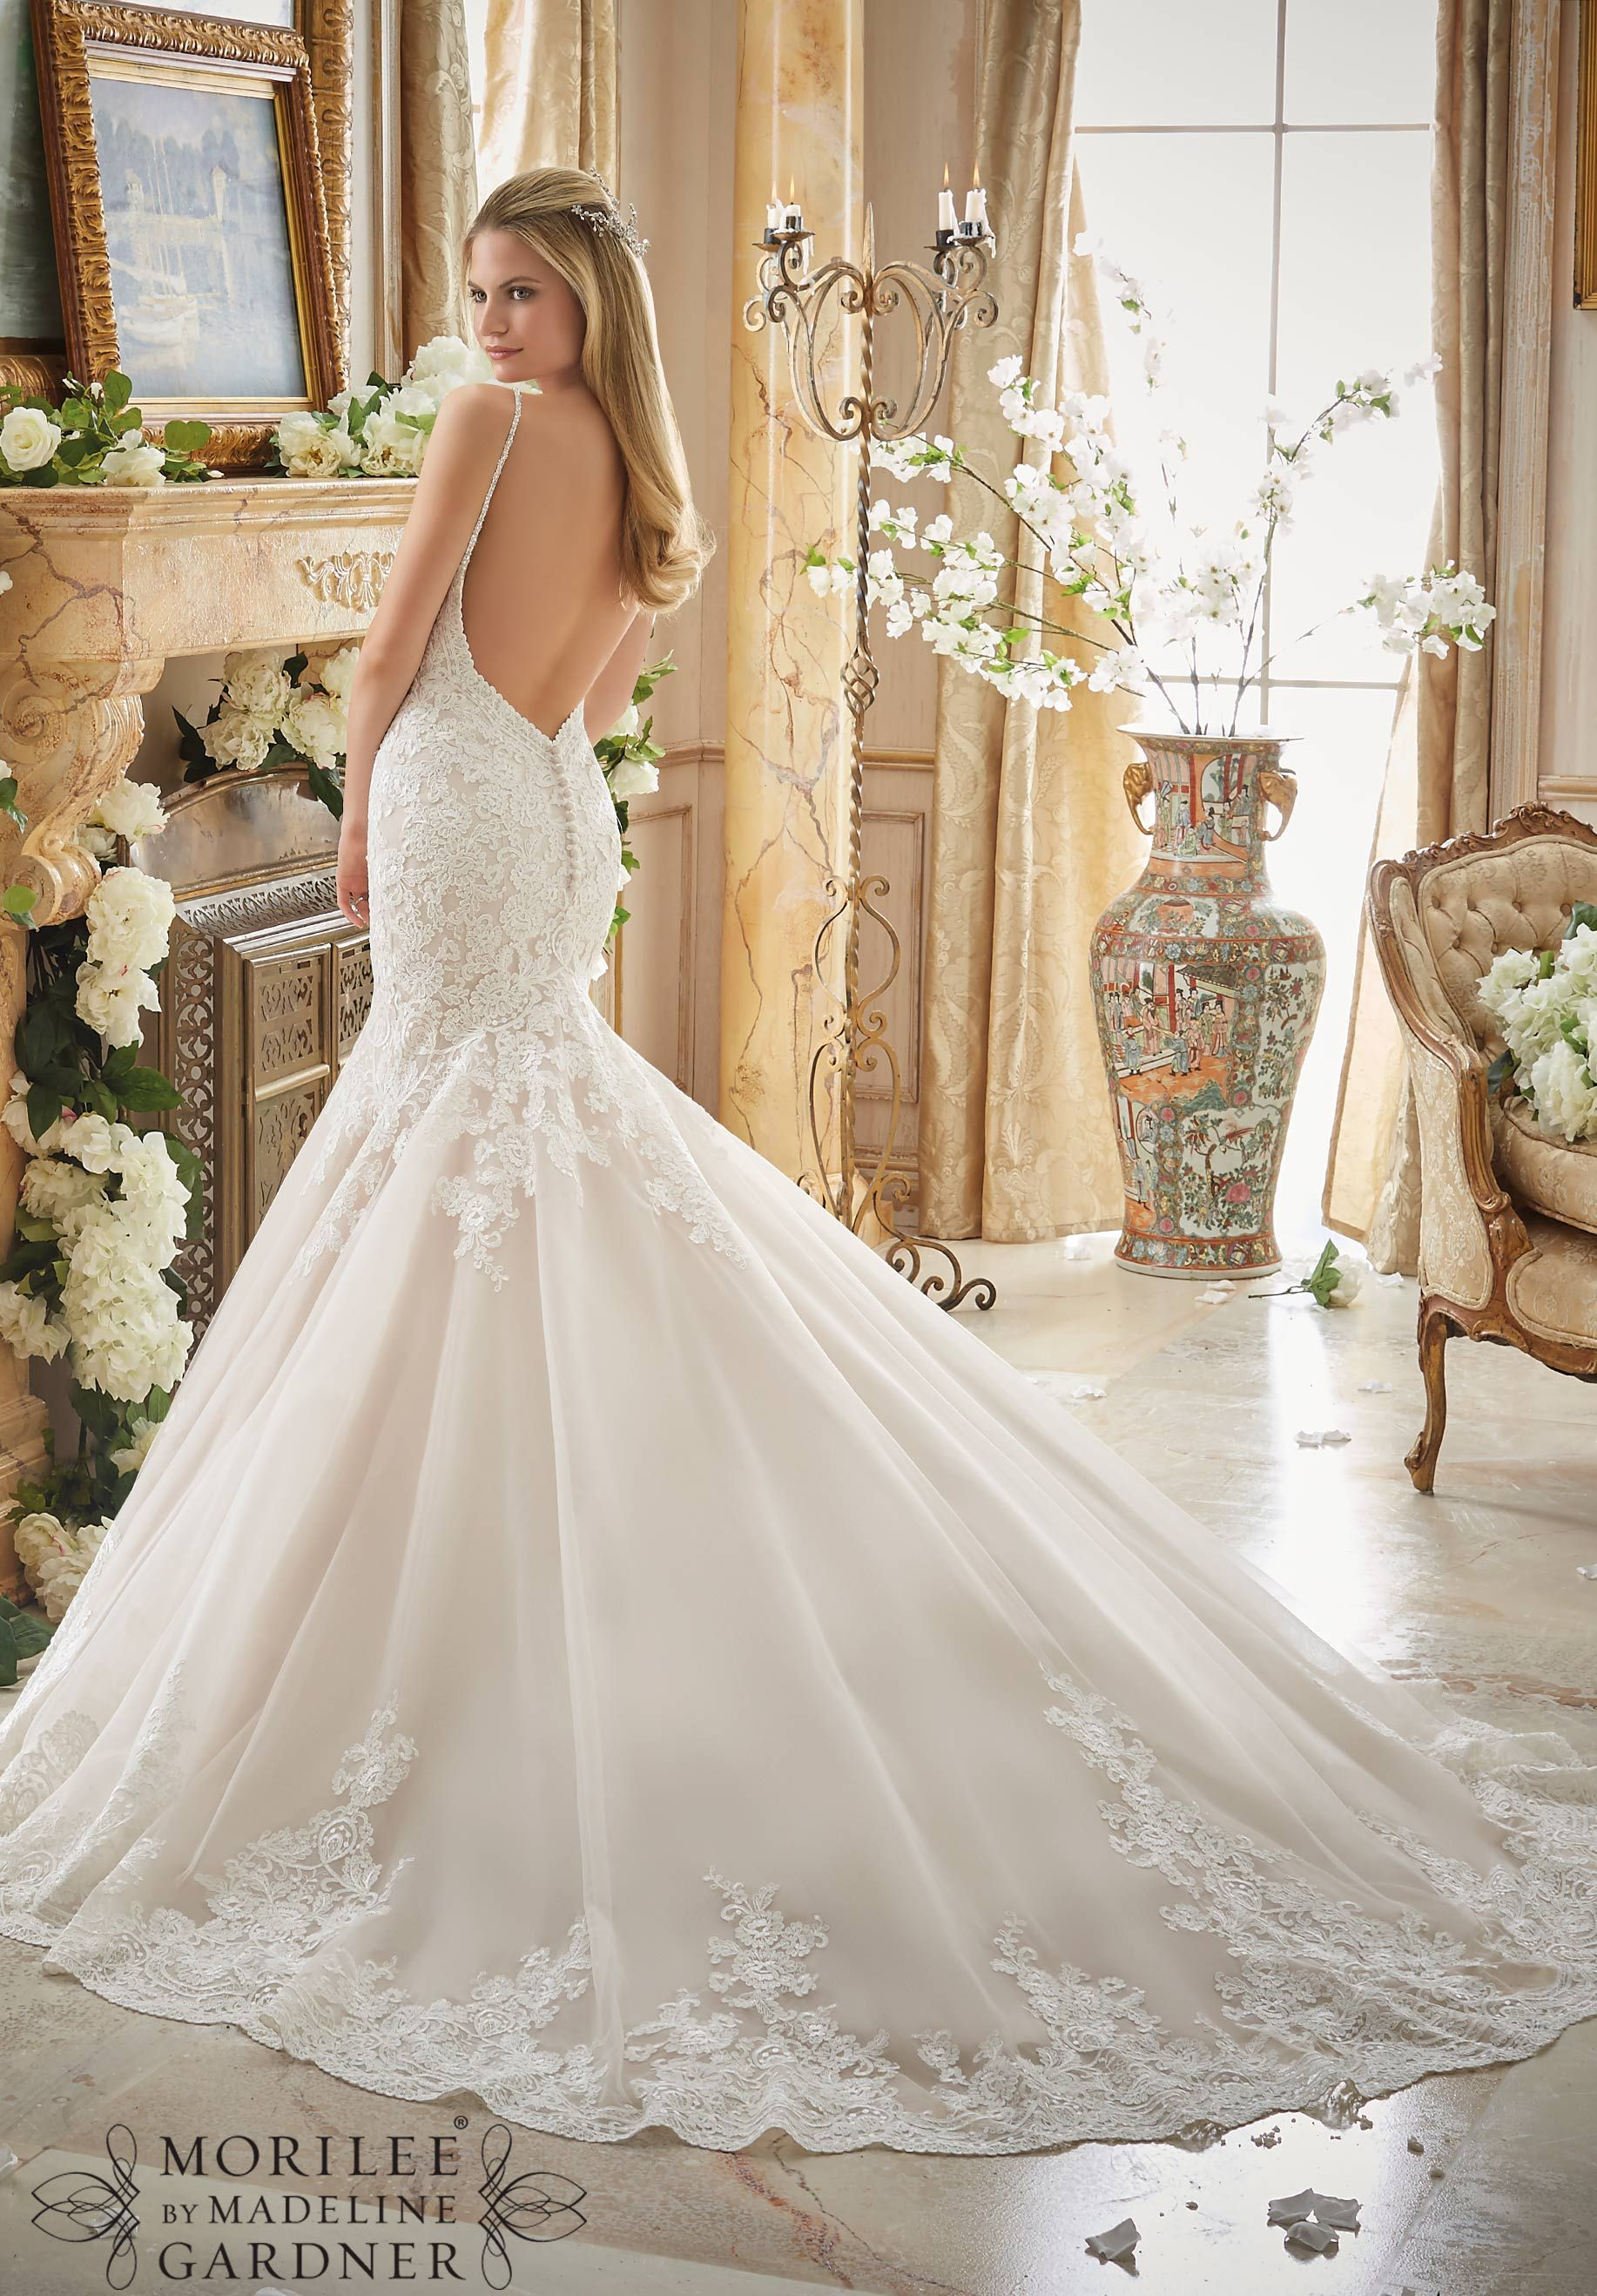 Wedding Dresses, Bridal Gowns, Wedding Gowns by Designer Morilee ...